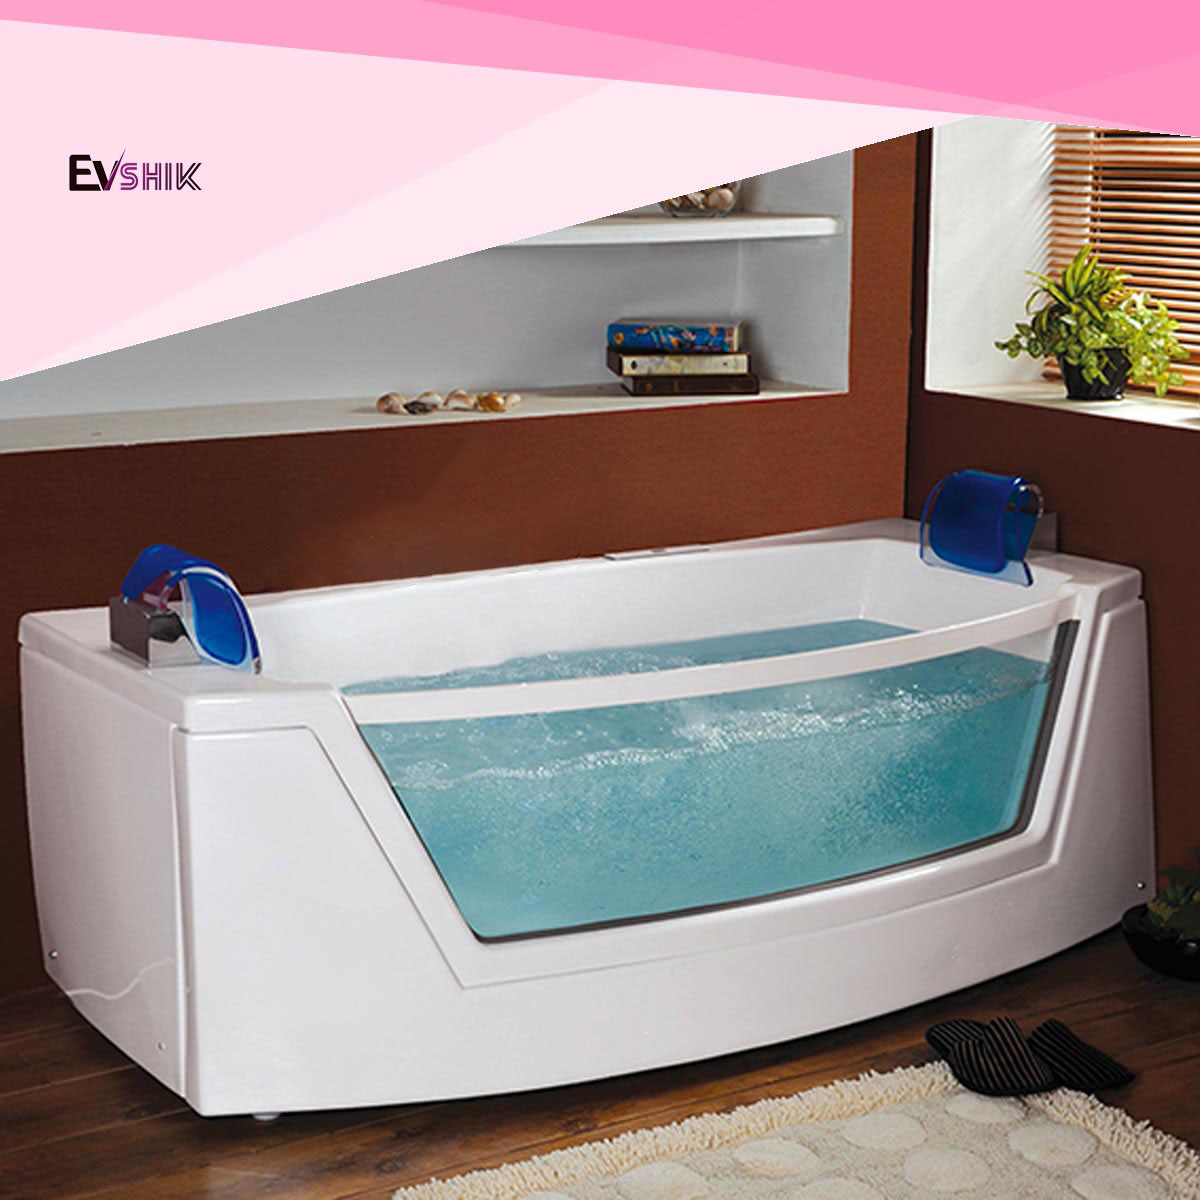 وان حمام شاینی Shiny Tub Model N-BT020